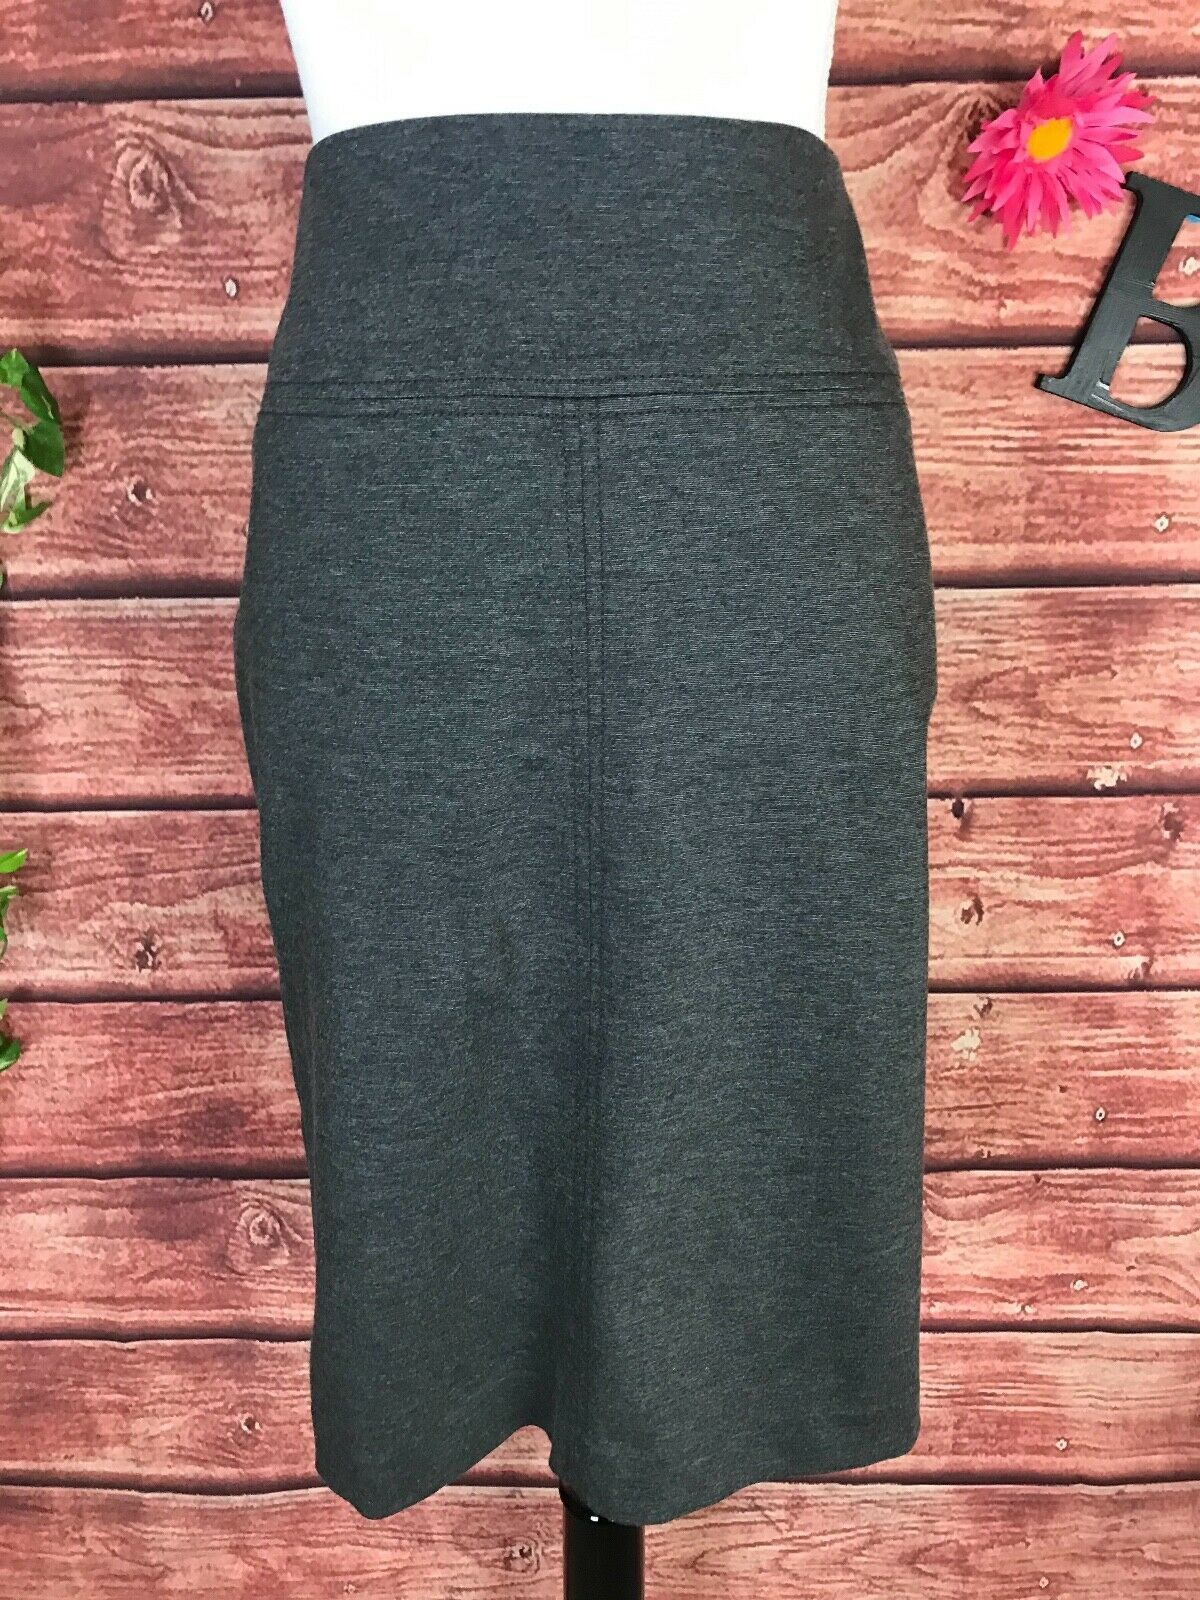 Primary image for Ann Taylor Skirt size 8 Charcoal Gray Stretch Ponte Knit Straight Pencil Knee